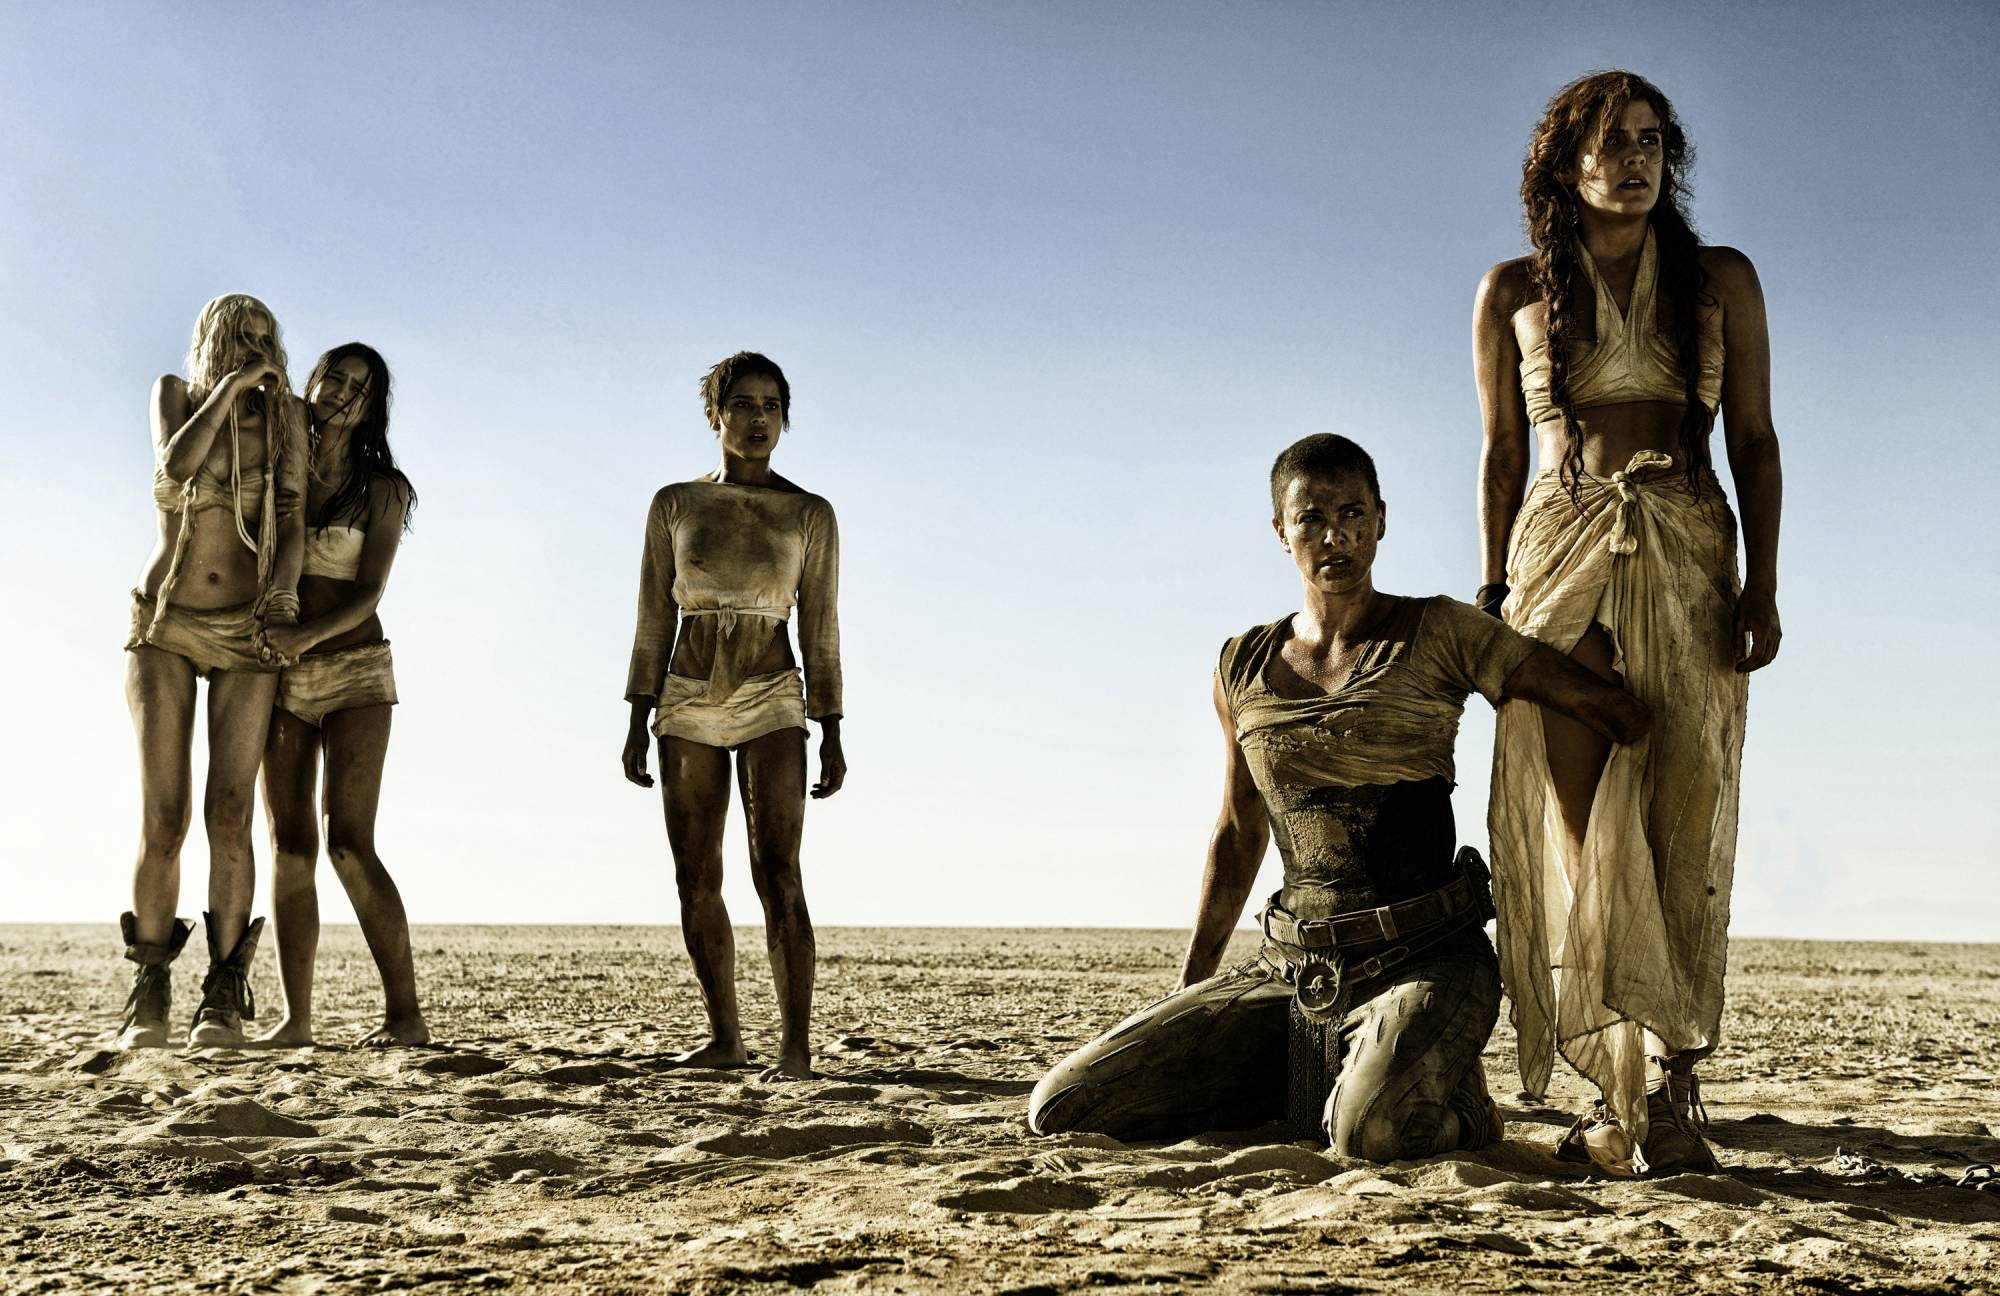 """This photo provided by Warner Bros. Pictures shows, from left, Abbey Lee as The Dag, Courtney Eaton as Cheedo the Fragile, Zoe Kravitz as Toast the Knowing, Charlize Theron as Imperator Furiosa and Riley Keough as Capable, in Warner Bros. Pictures' and Village Roadshow Pictures' action adventure film, """"Mad Max:Fury Road,"""" a Warner Bros. Pictures release. (Jasin Boland/Warner Bros. Pictures via AP)"""